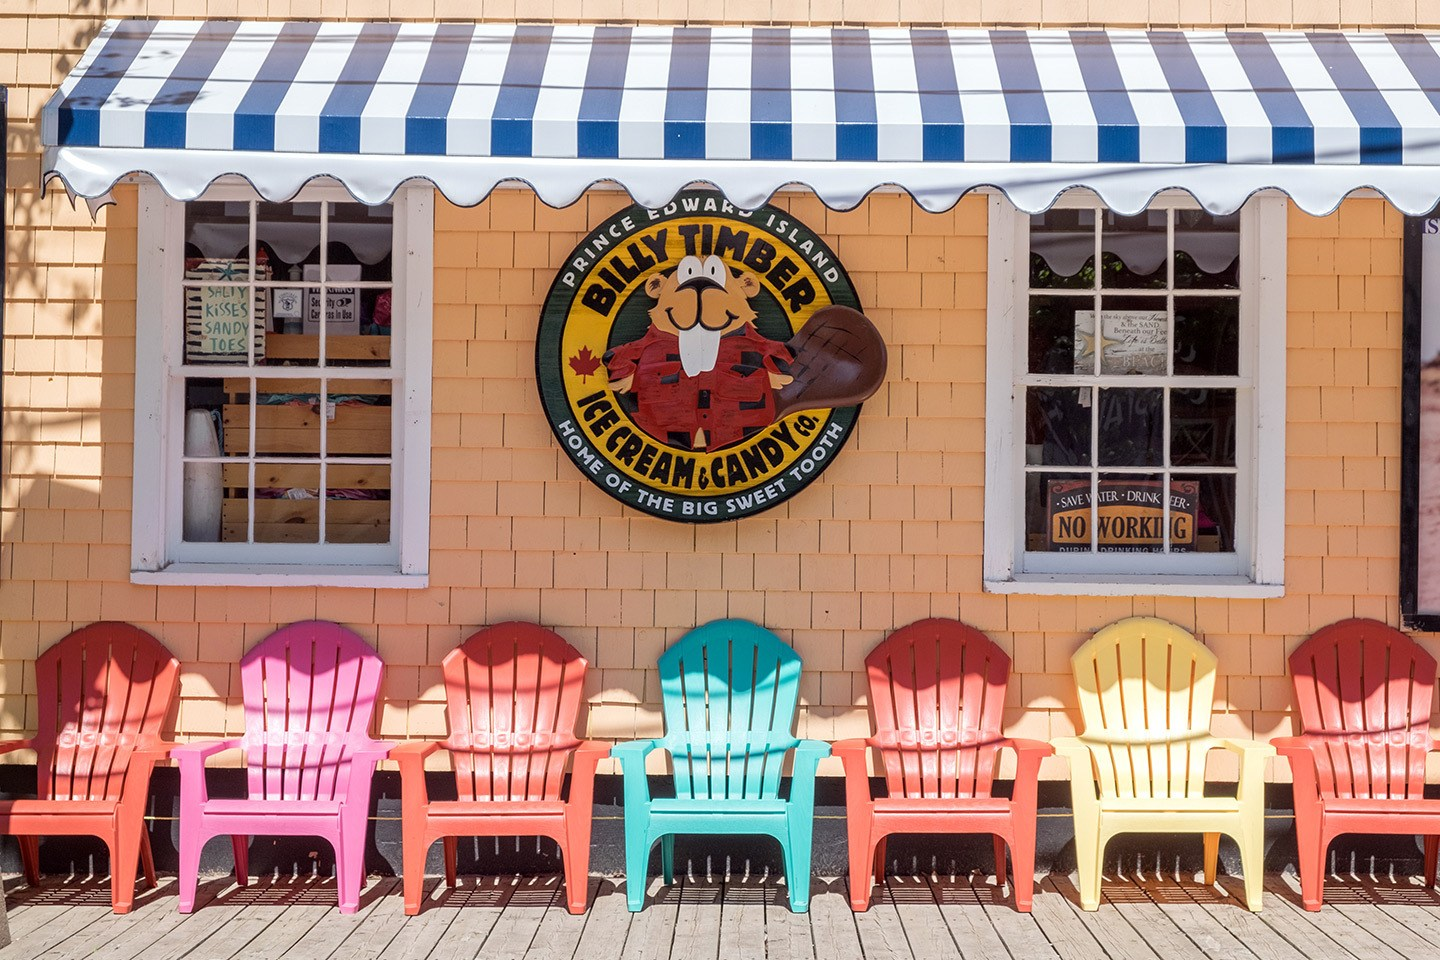 Ice cream shop in Charlottetown, Prince Edward Island, Canada